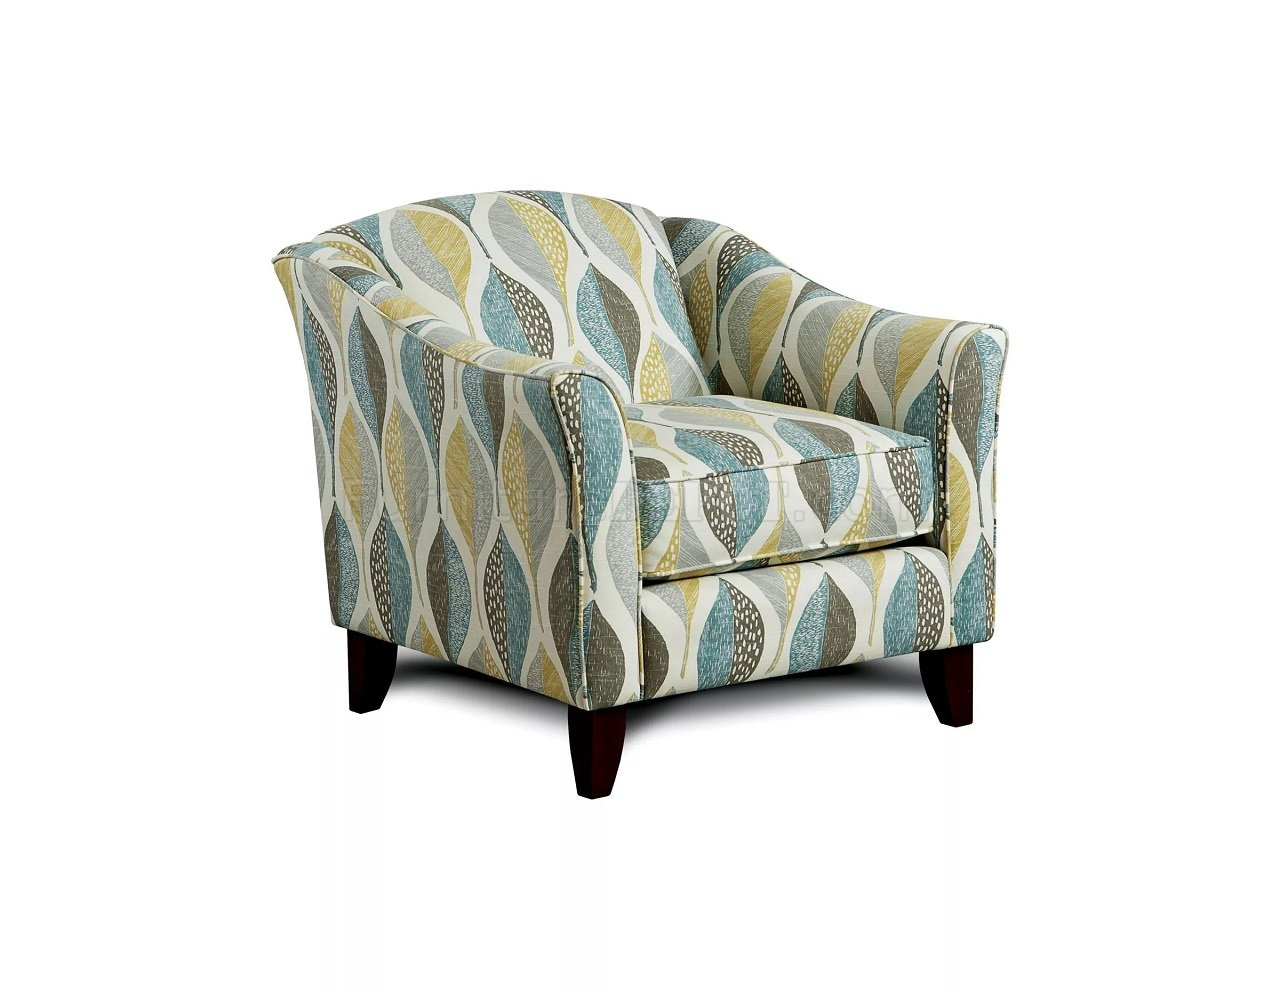 Brubeck Sofa Sm8140 In Light Teal Fabric W Options